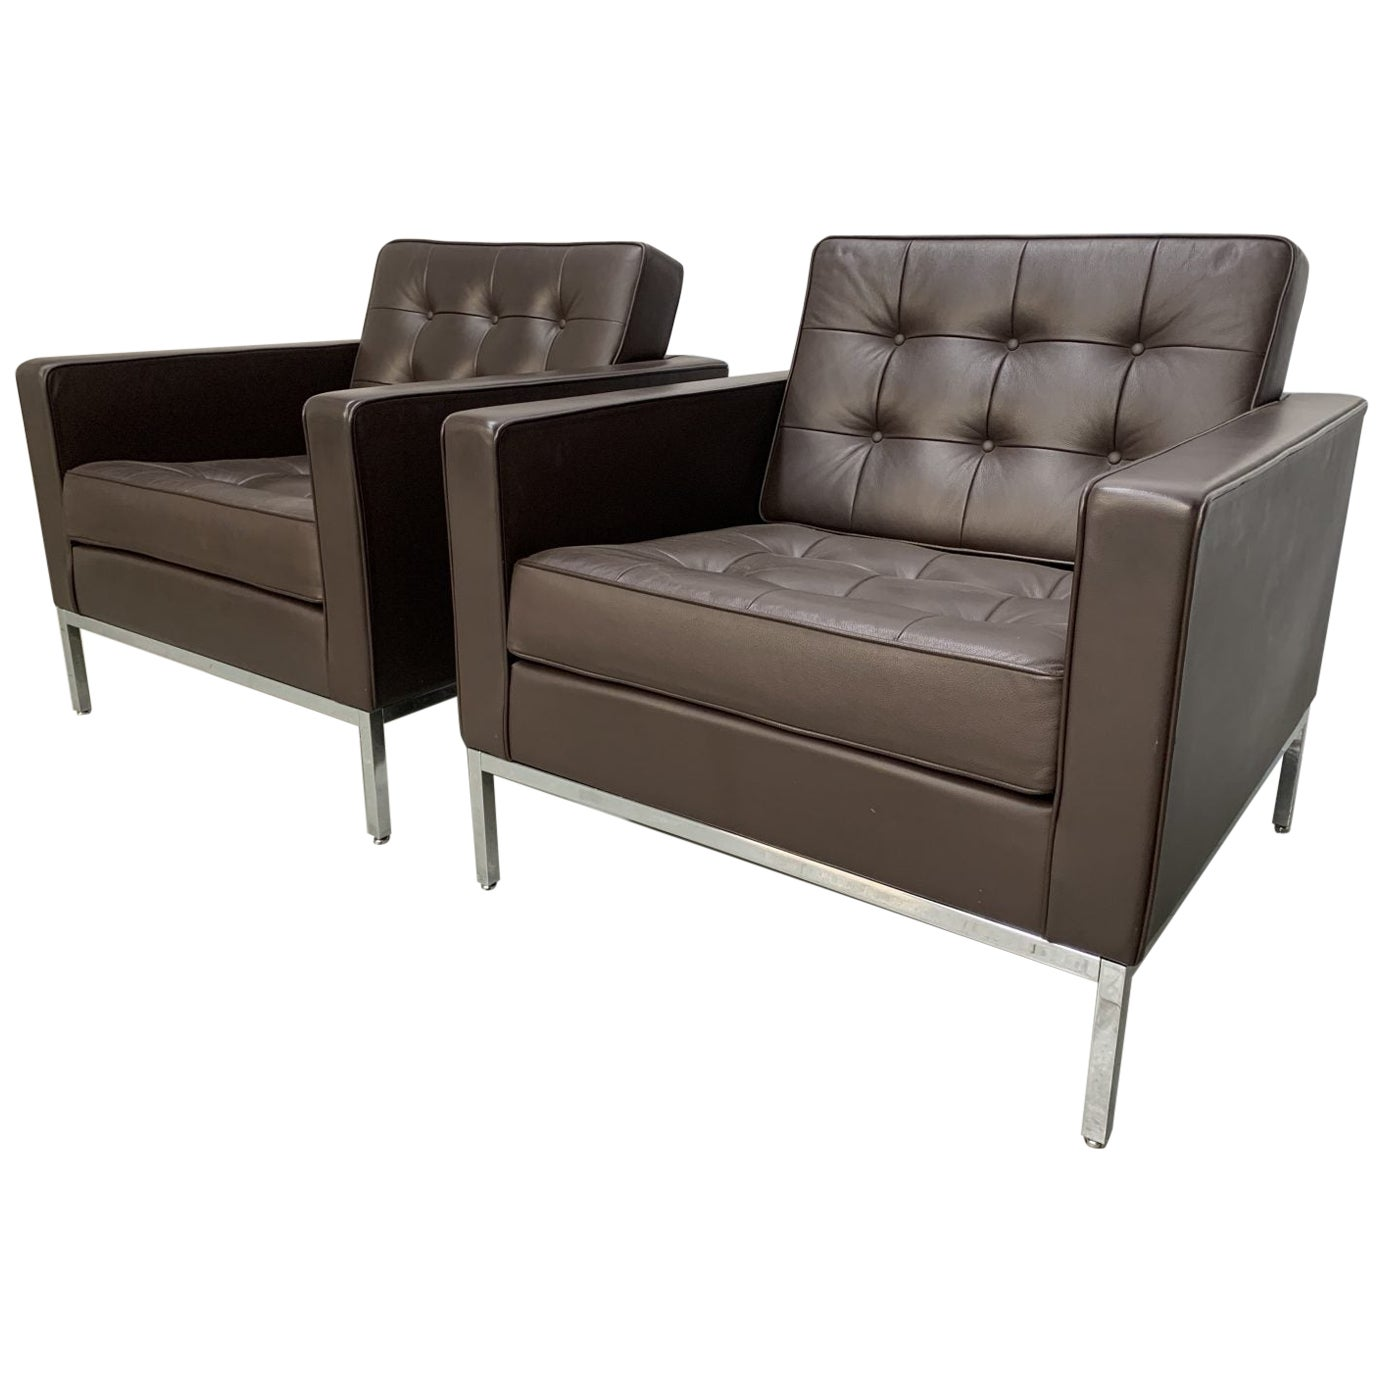 "Pair of Knoll Studio ""Florence Knoll"" Lounge Chairs in ""Sabrina"" Brown Leather"